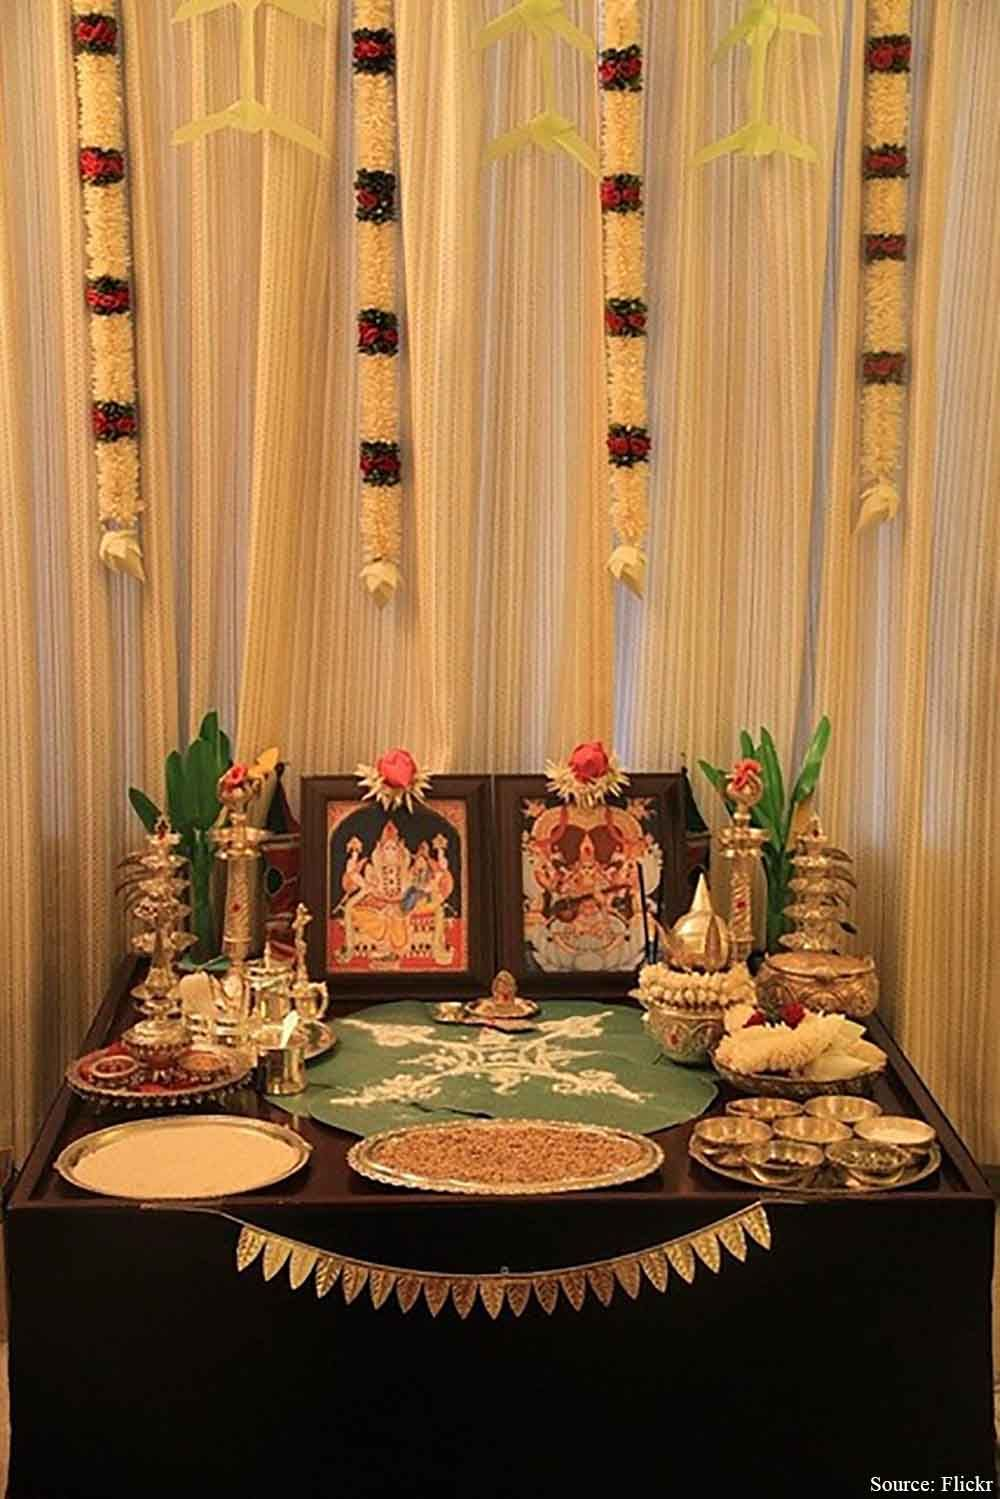 Lamps doors vastu idols placement pooja room ideas pooja room - The Broad Wooden Platform Table Adorned With All The Necessary Ingredient Or Diwali Puja